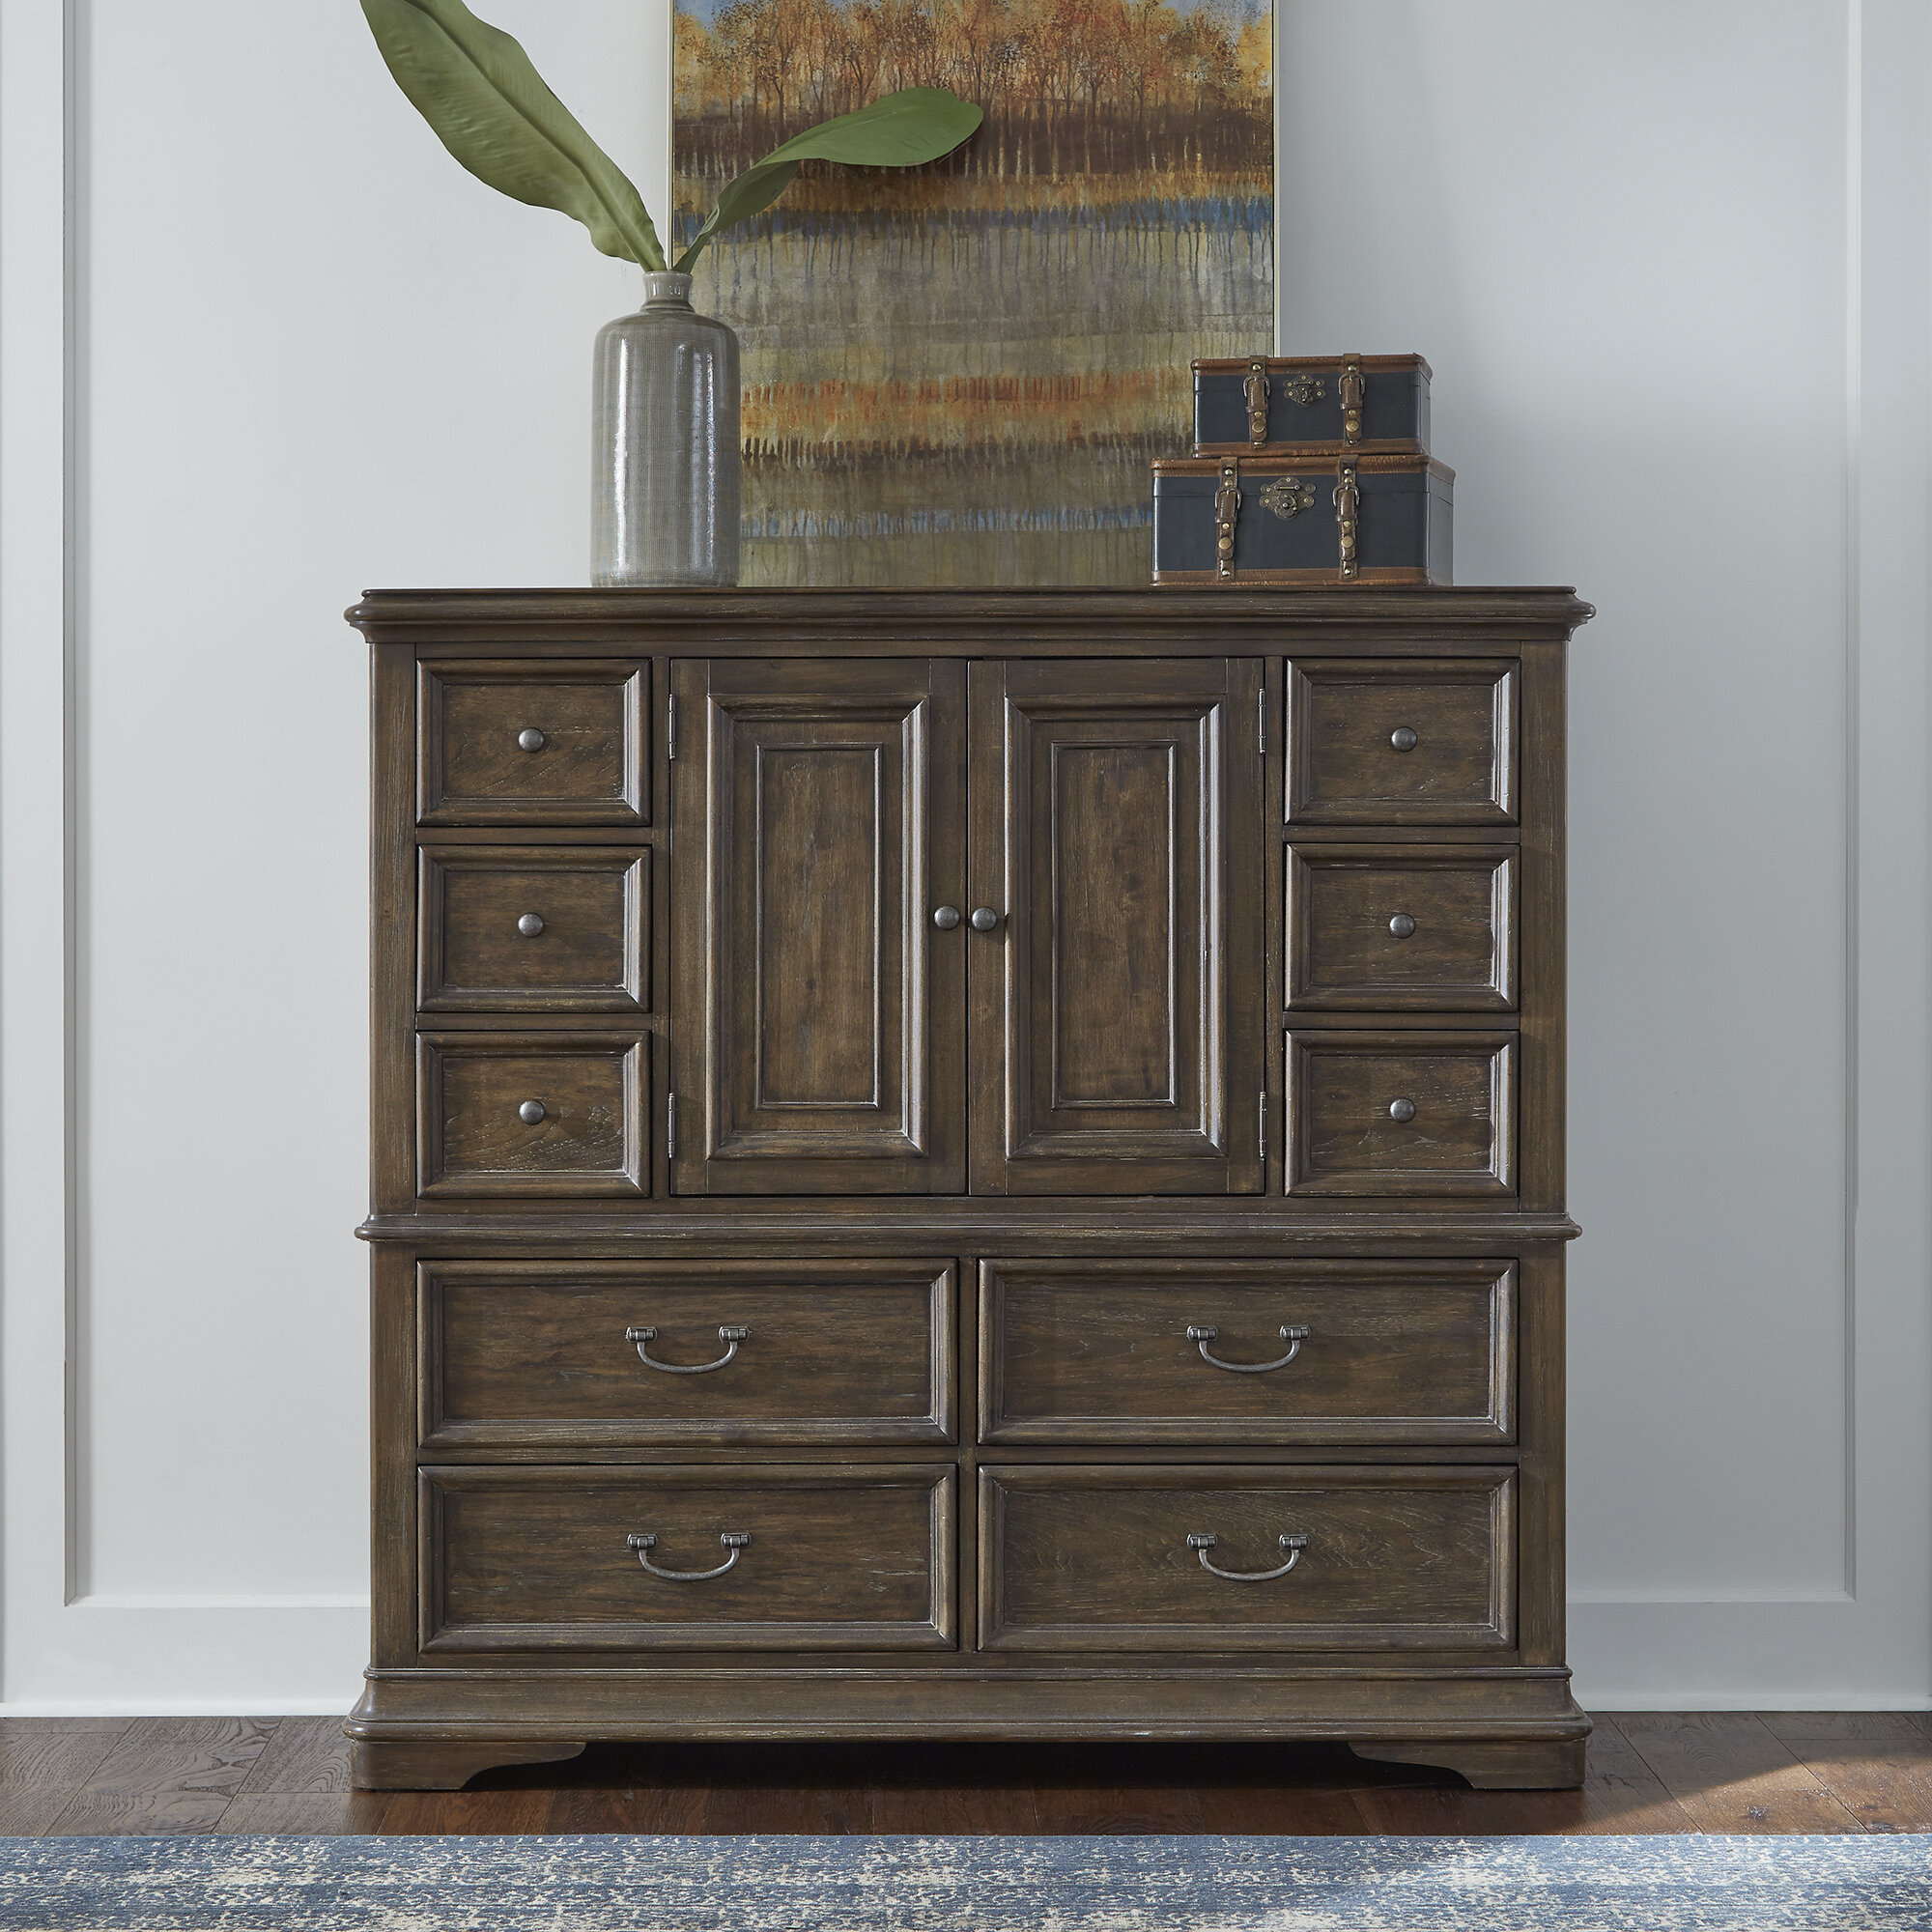 10 Or More Tall Dressers Chests You Ll Love In 2021 Wayfair